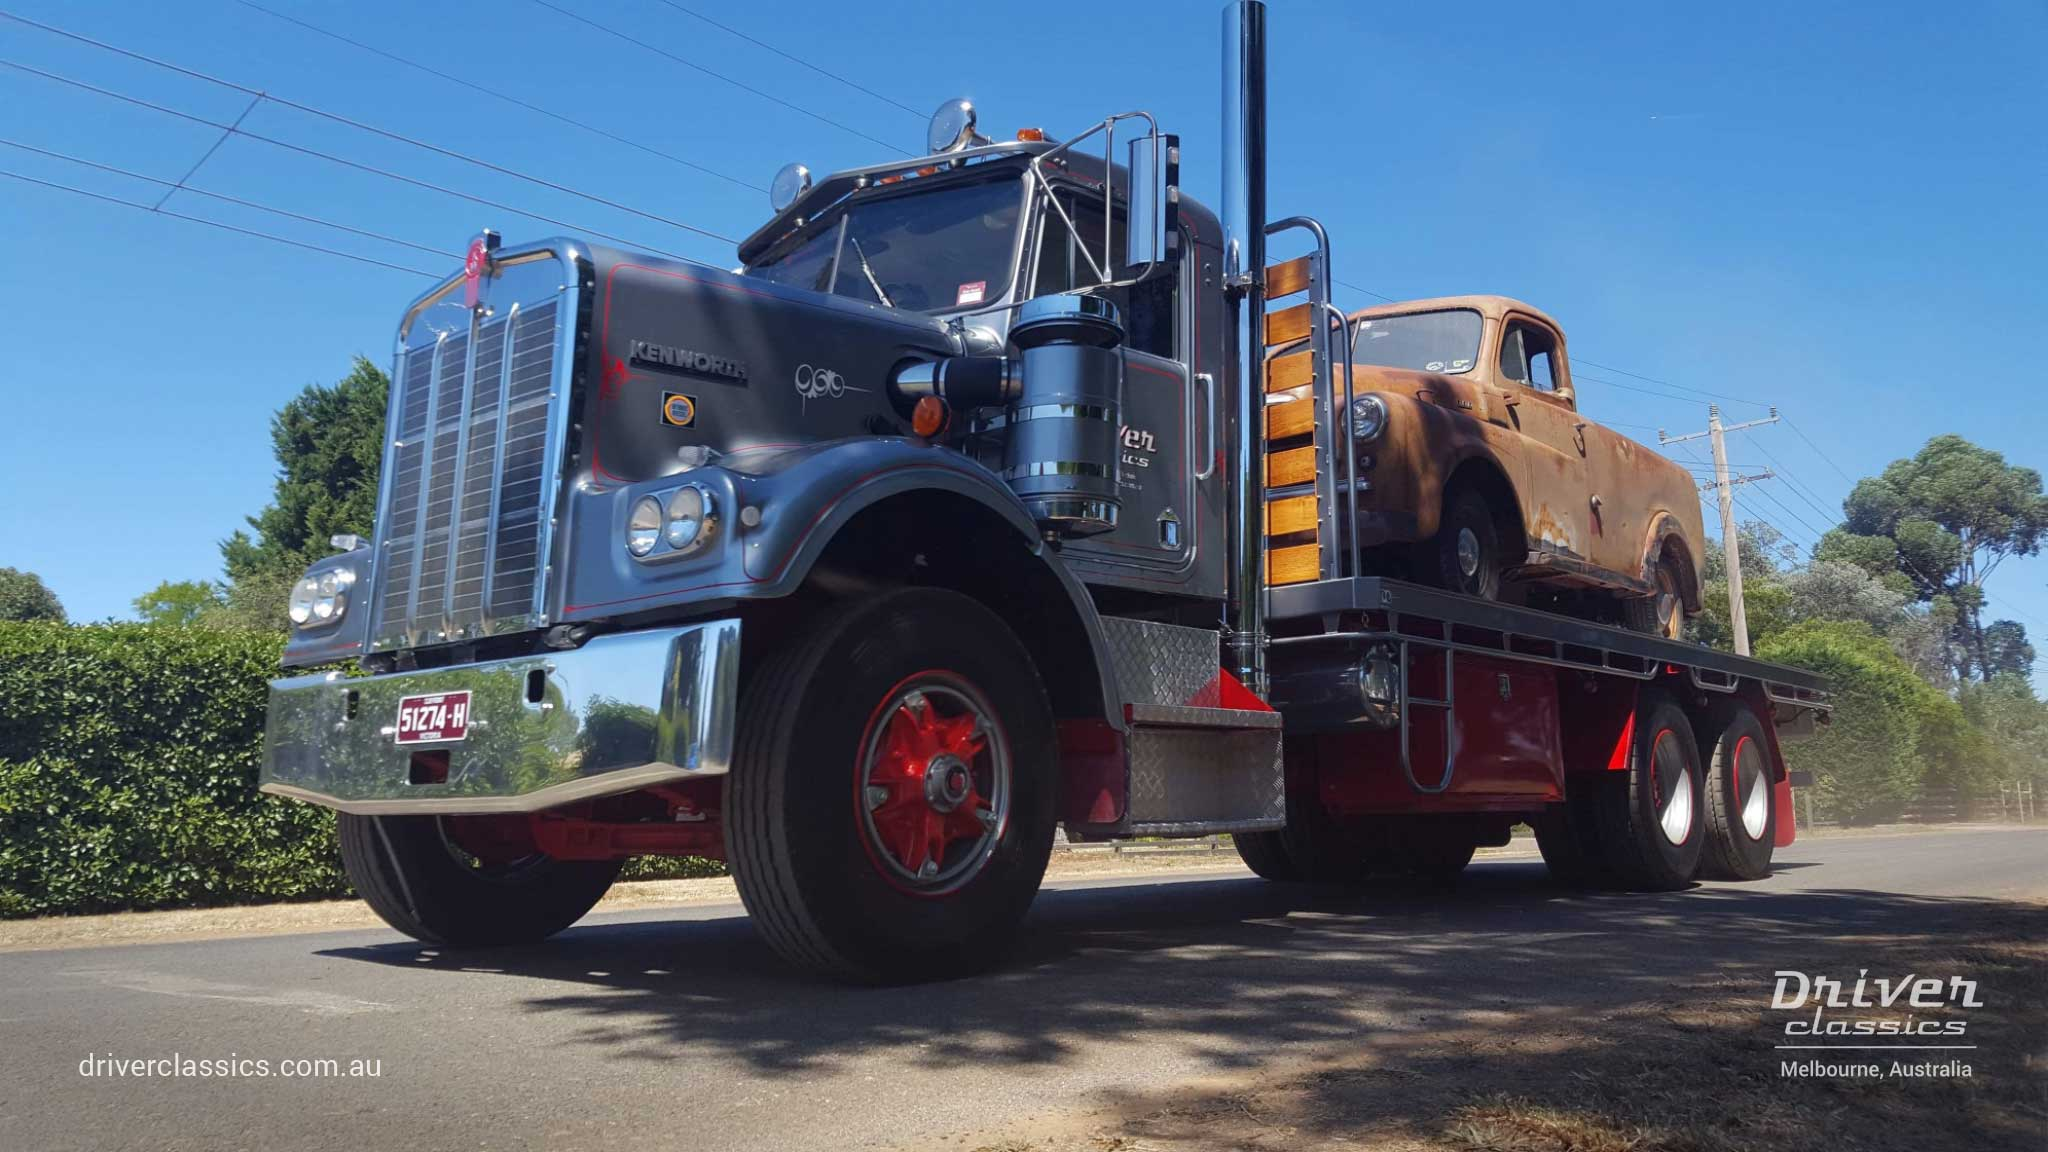 1977 Kenworth W925 S2 with 1950 Dodge on the back, Lancefield Victoria. Photo taken February 2019